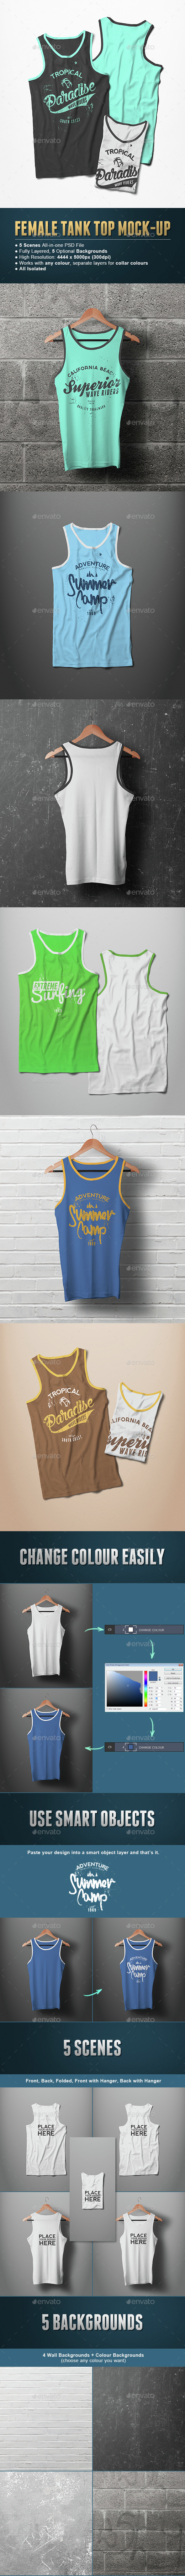 Male Tank Top T-shirt Mock-up